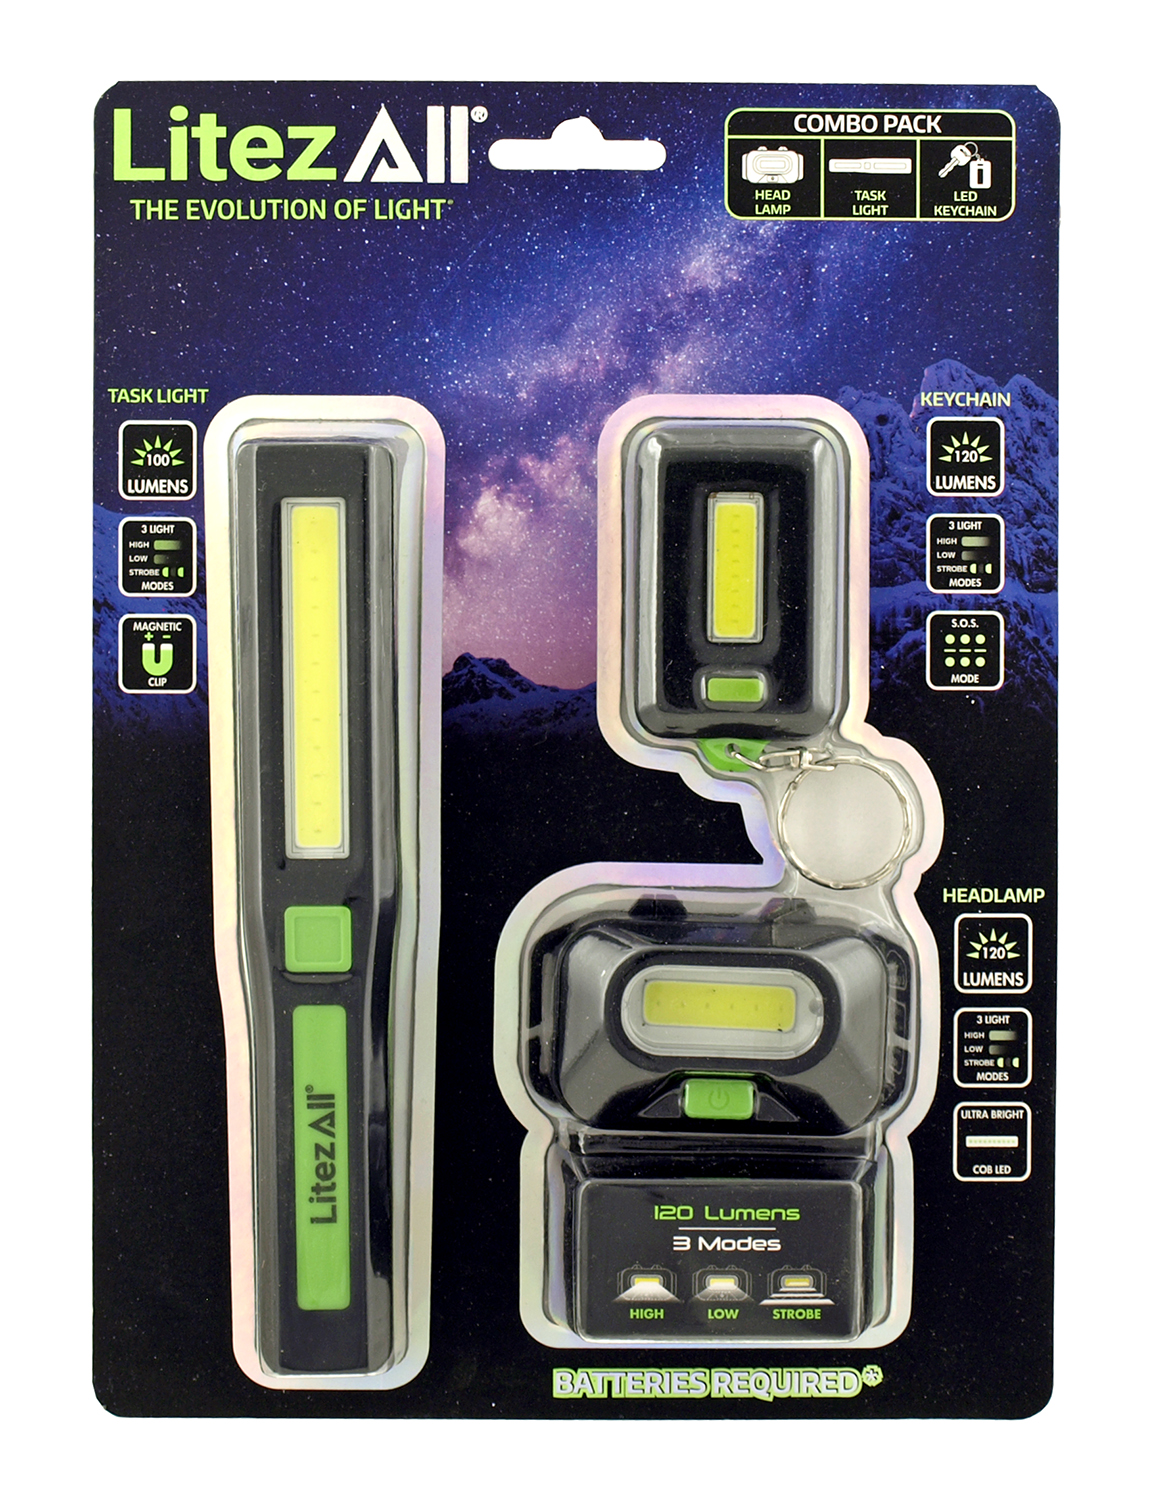 LitezAll Flashlight Multi Pack with Keychain, Task Light, and Head Lamp